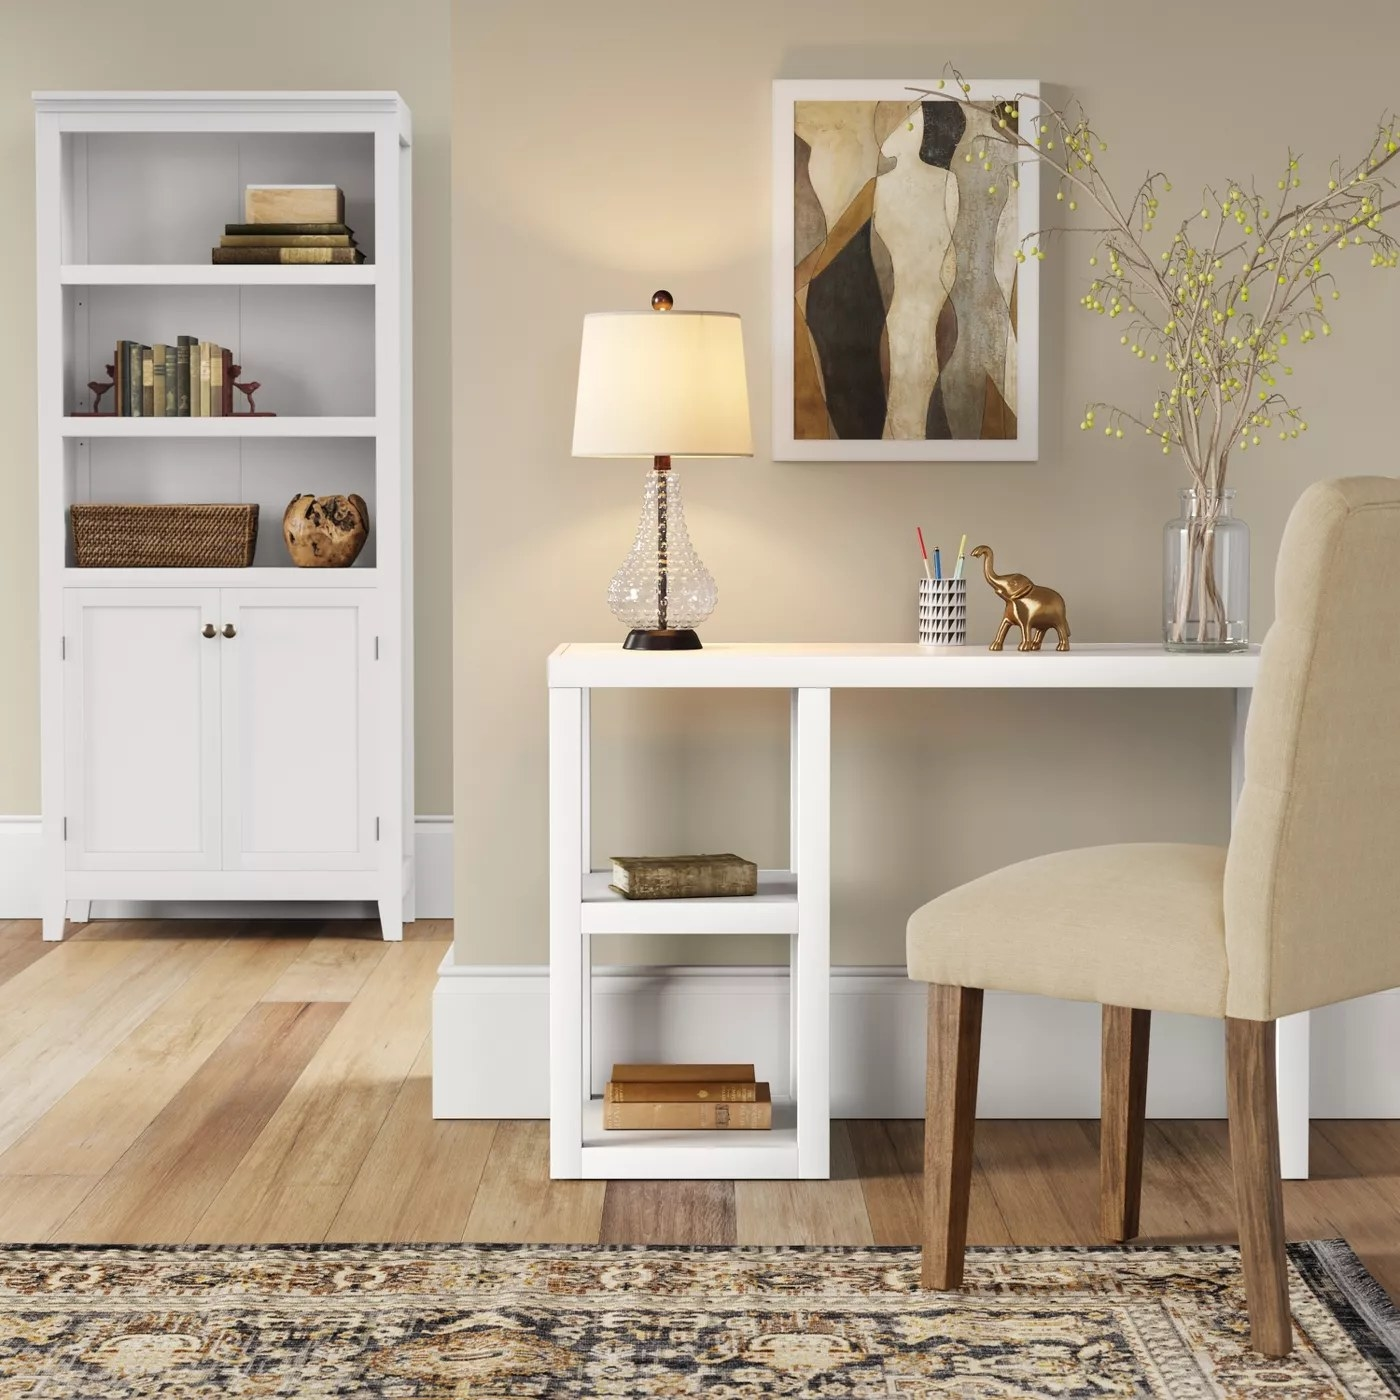 The white minimalist desk with two side storage spaces